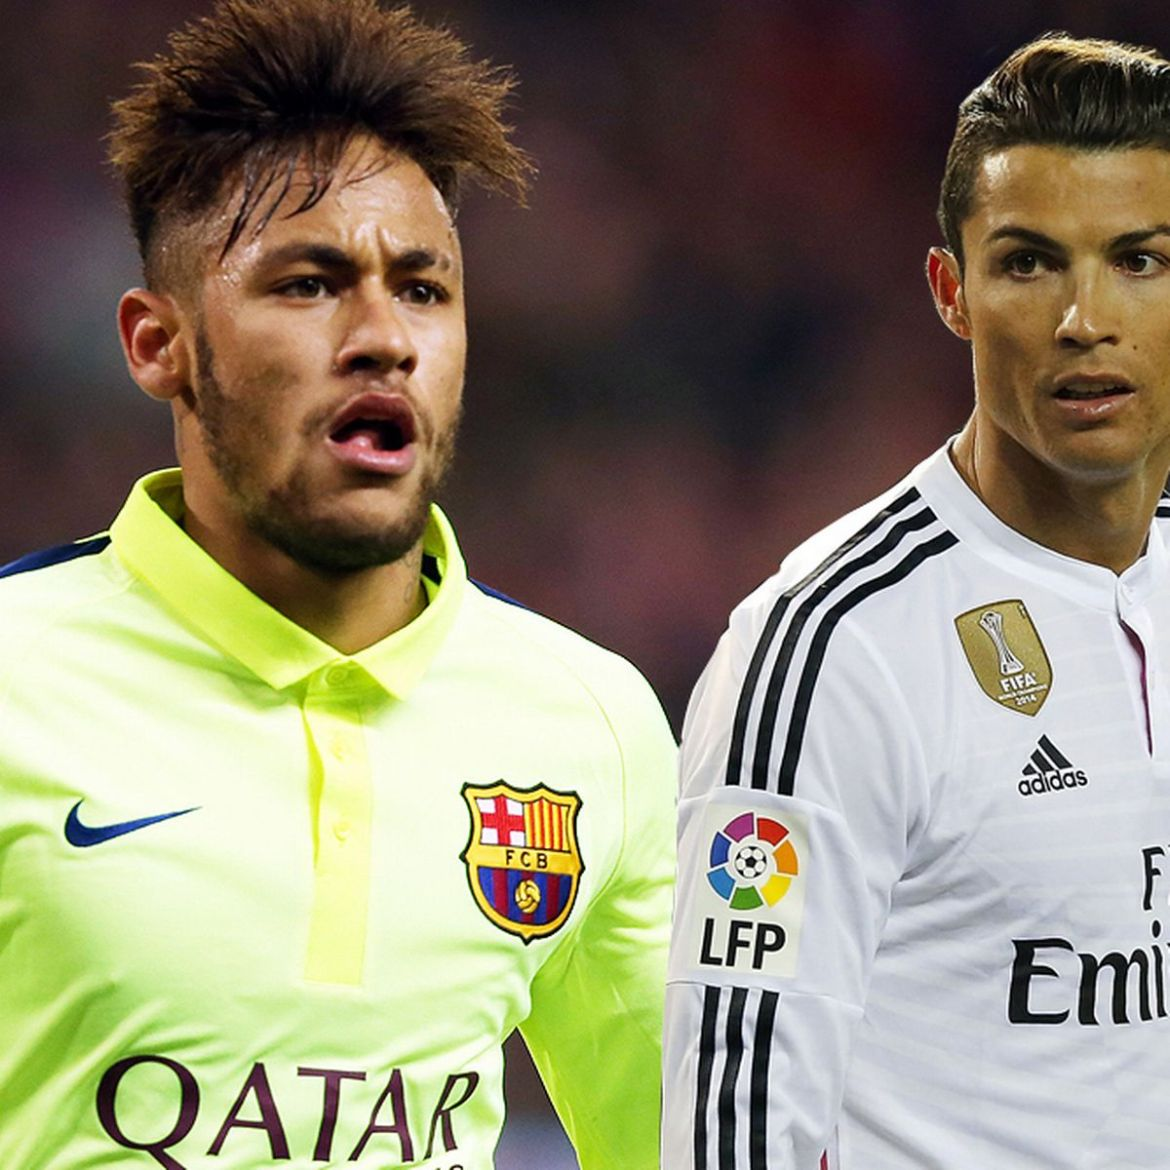 Comparing Neymar to Ronaldo: Which One is Better?